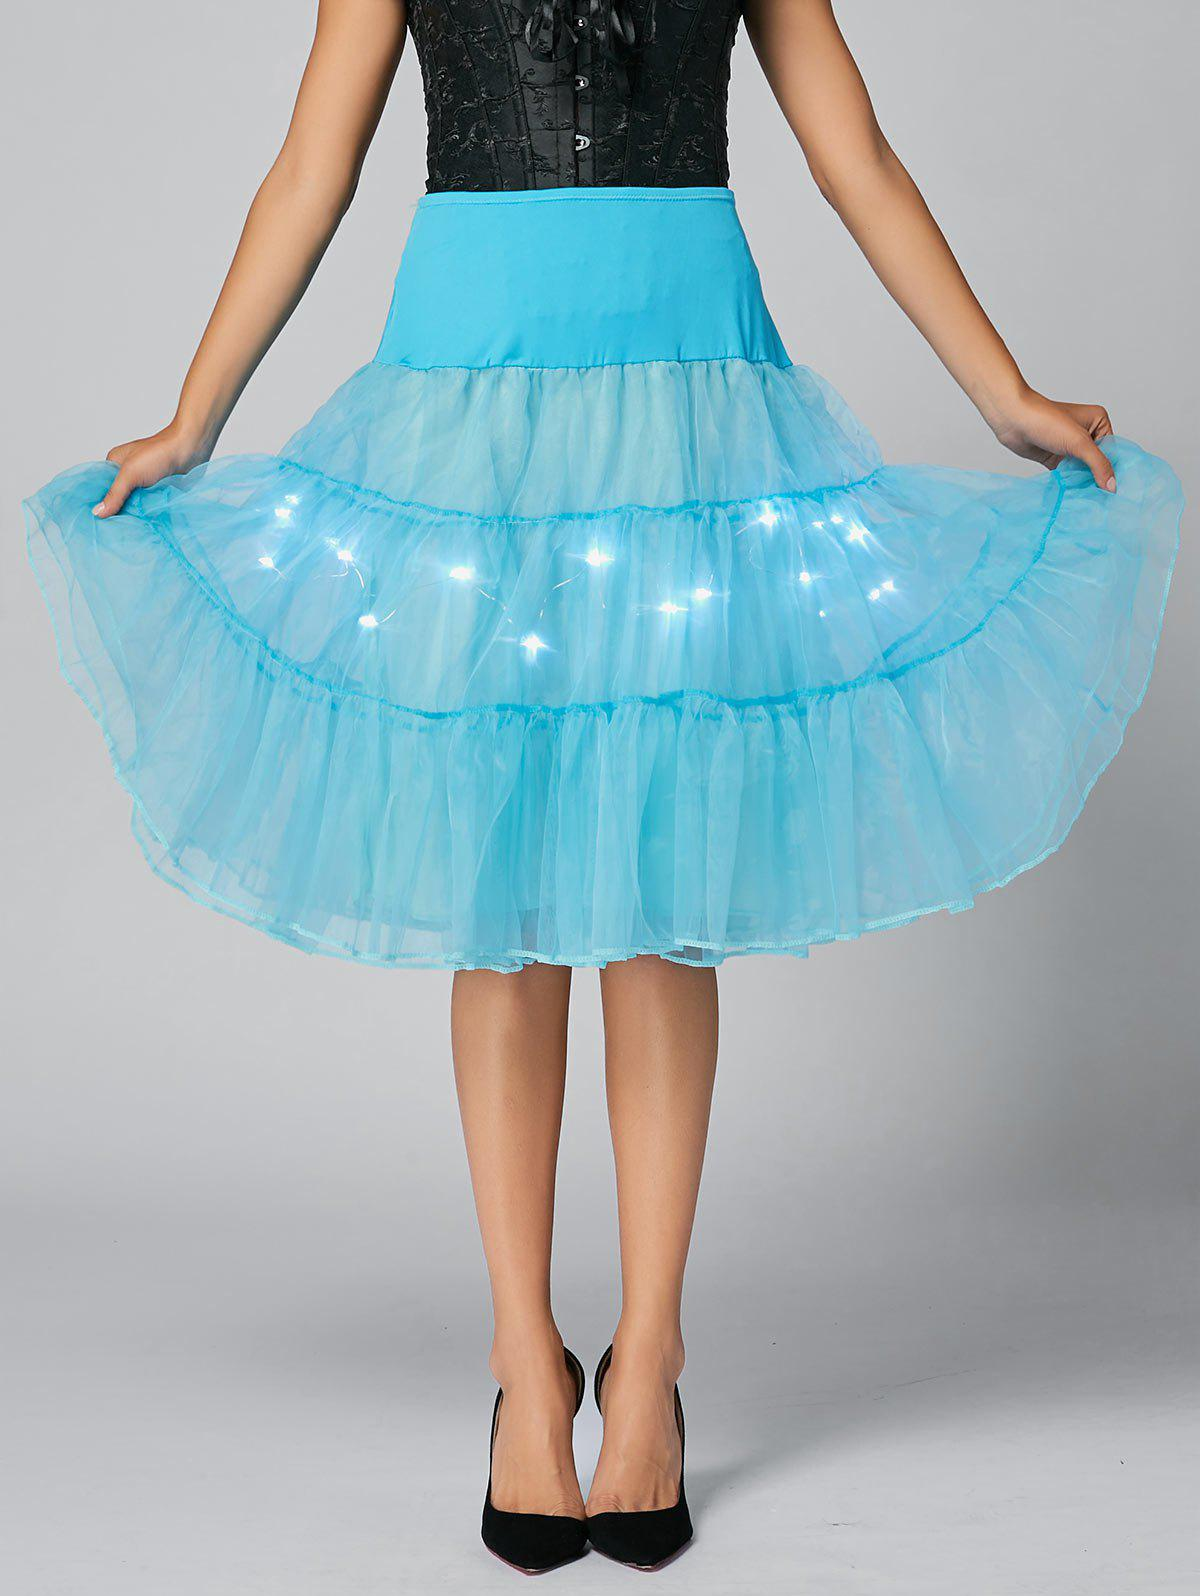 Flounce Light Up jupe de cosplay - Bleu clair M